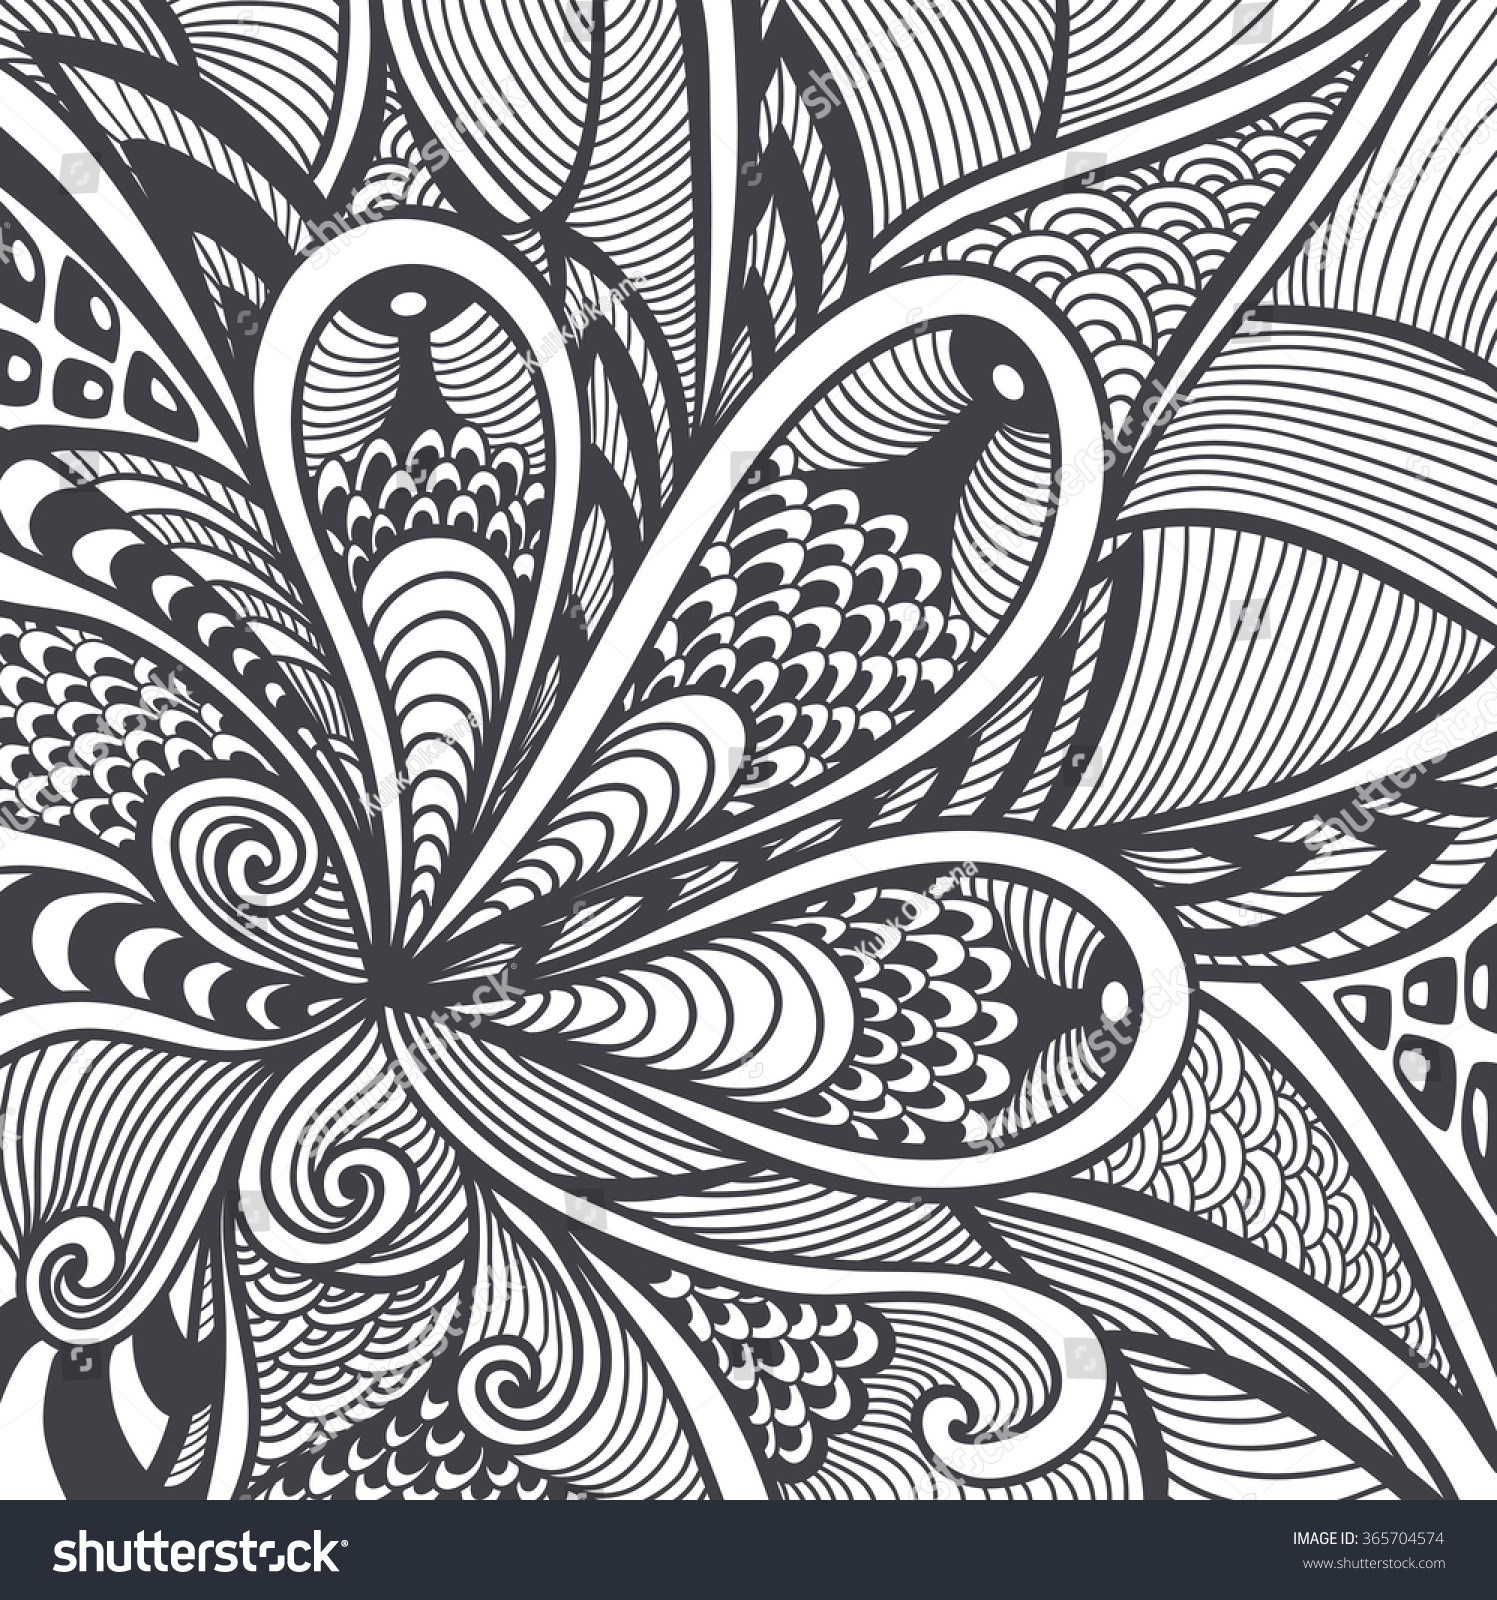 abstract pattern or texture in zen tangle zen doodle style black on white for